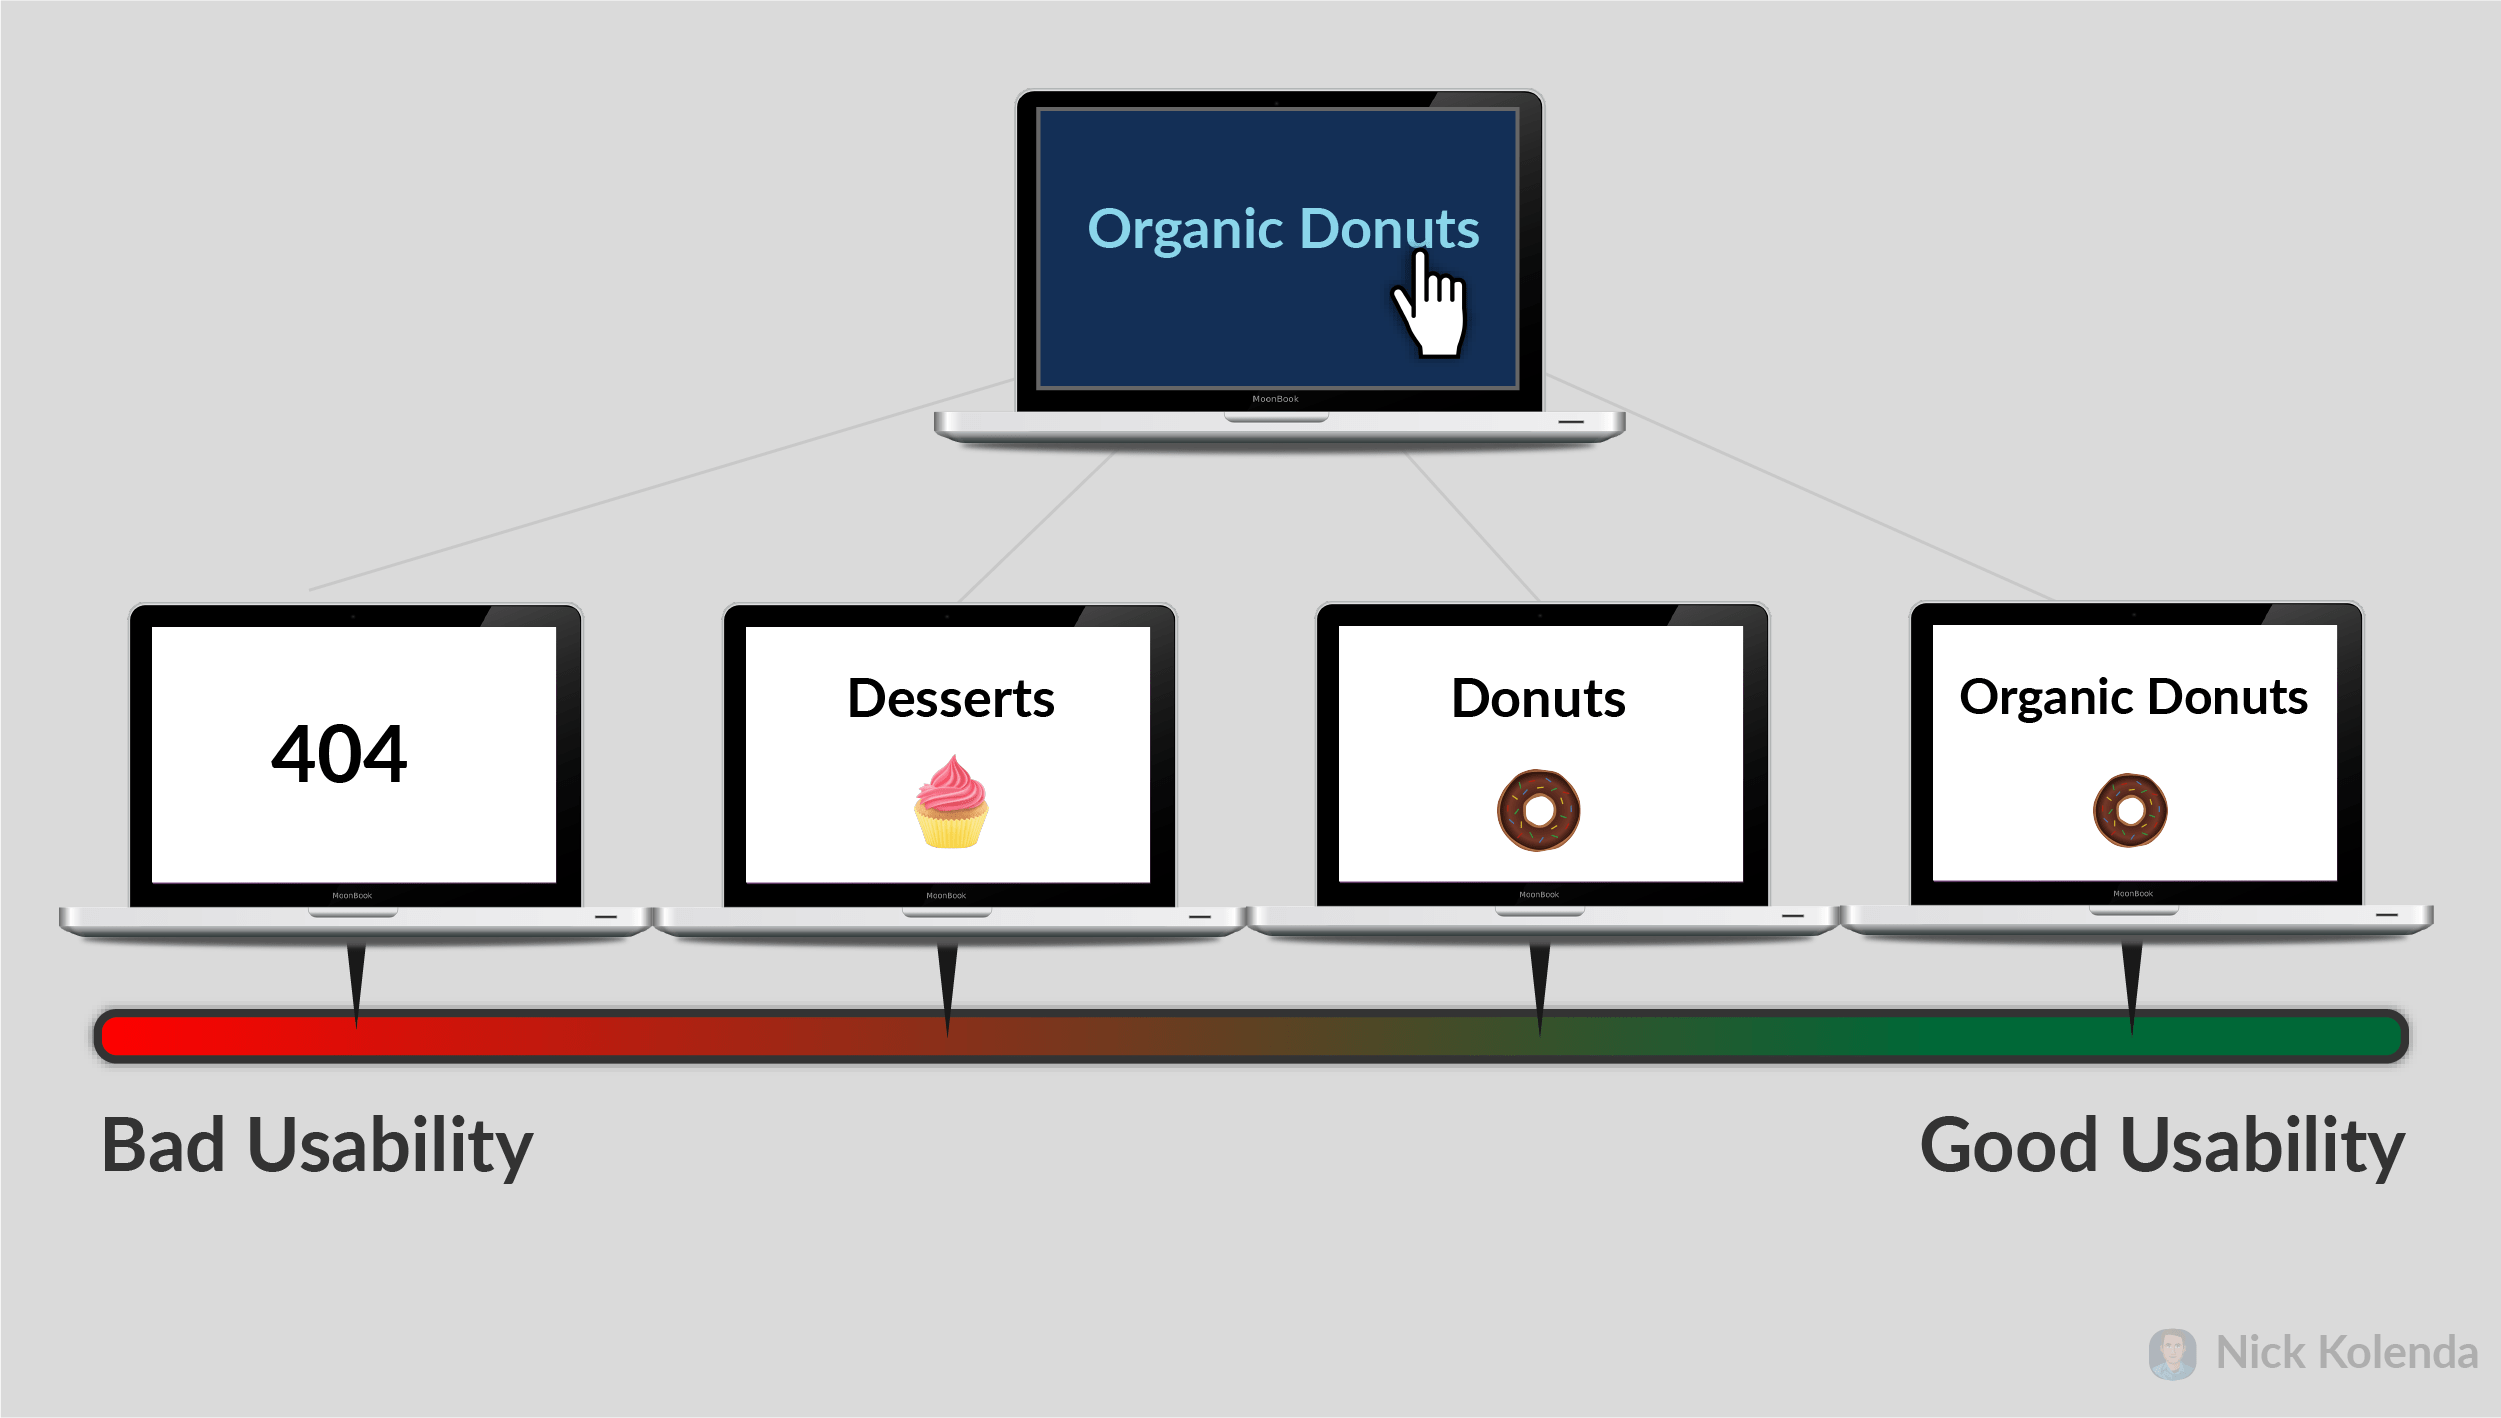 """Clicks link for """"Organic Donuts"""" and arrives on page for """"Organic Donuts"""""""